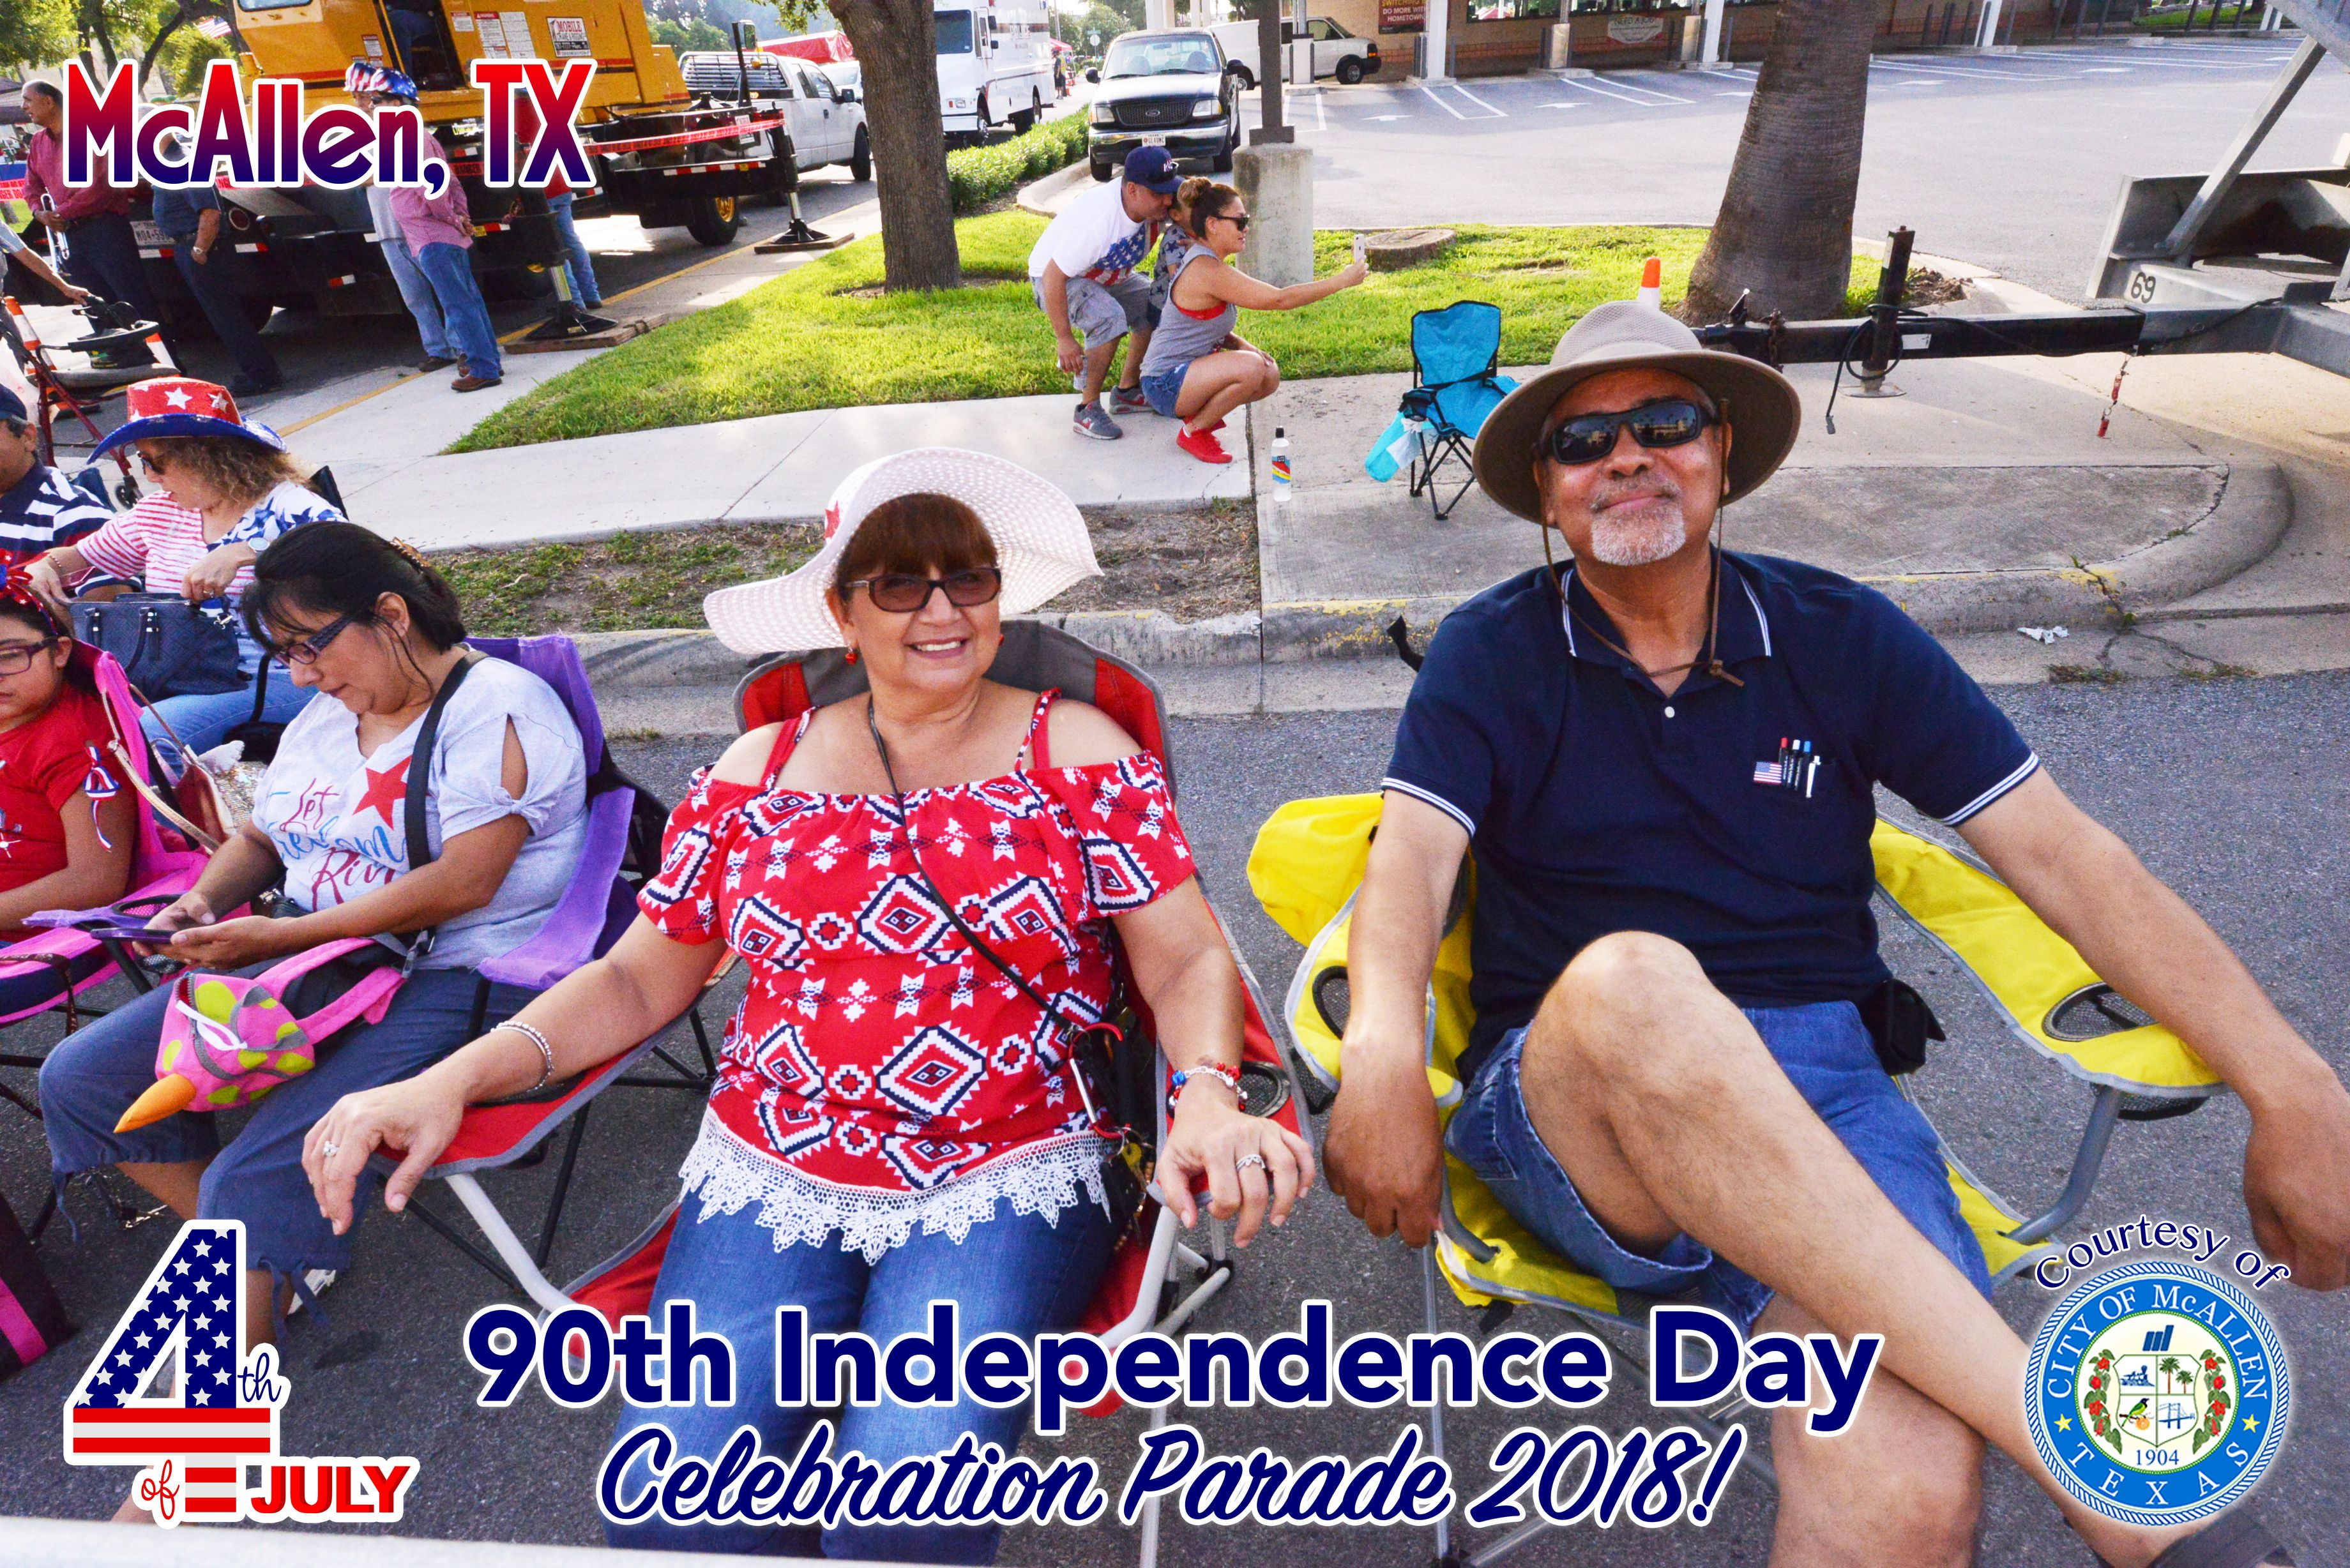 90th McAllen 4th of July Celebration Parade 2018 – Part 3